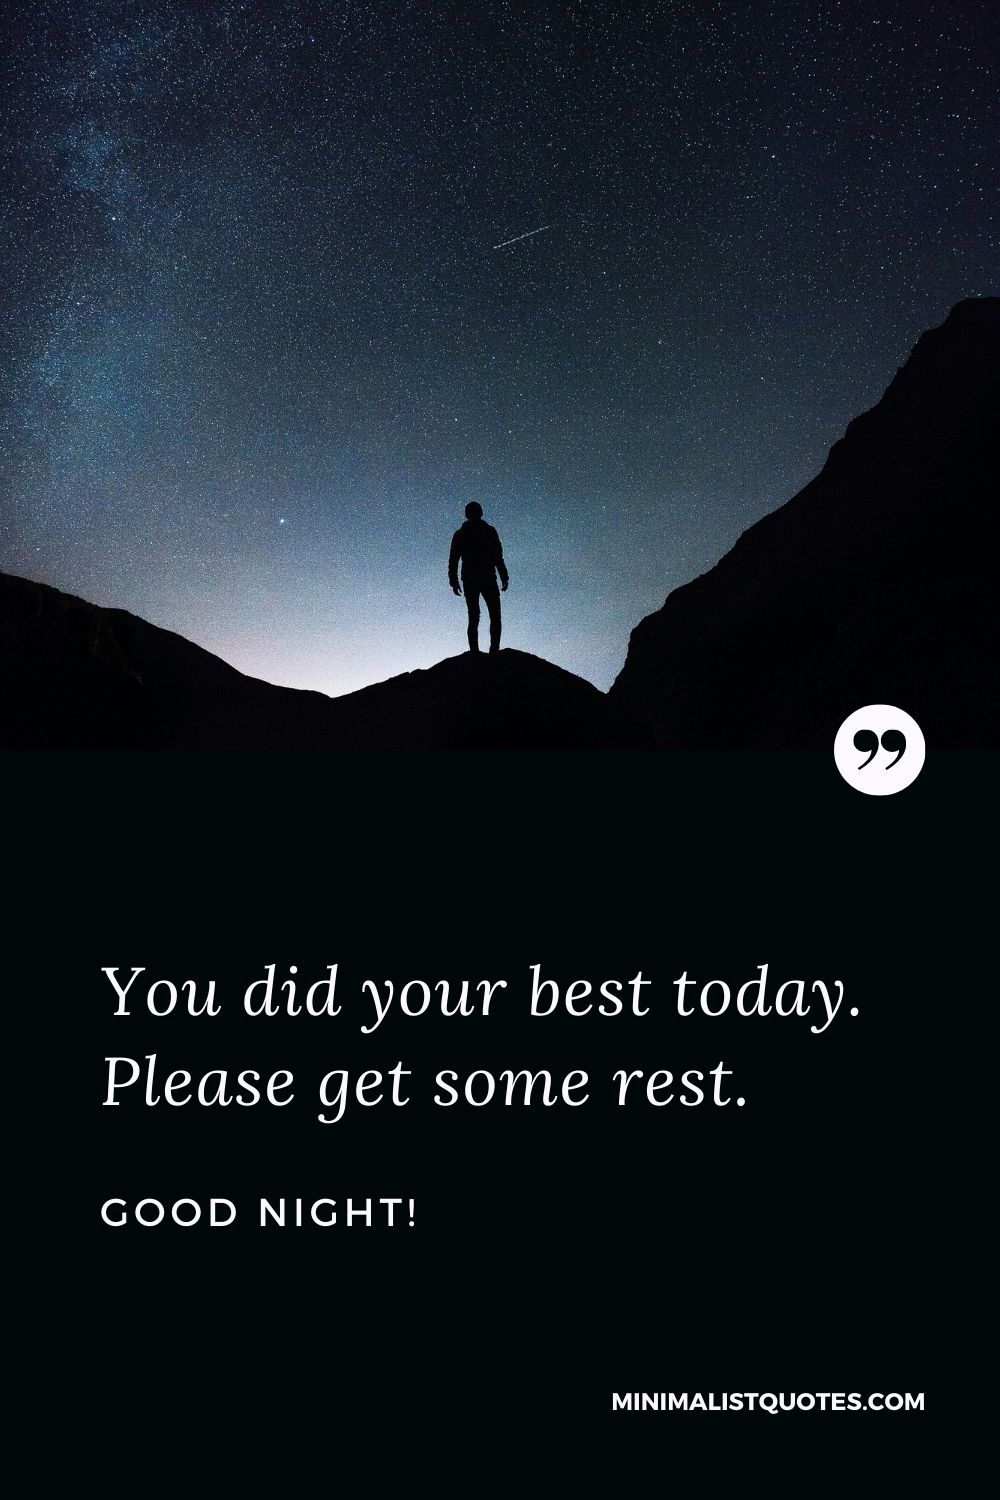 Good Night Wishes - You did your best today. Please get some rest.